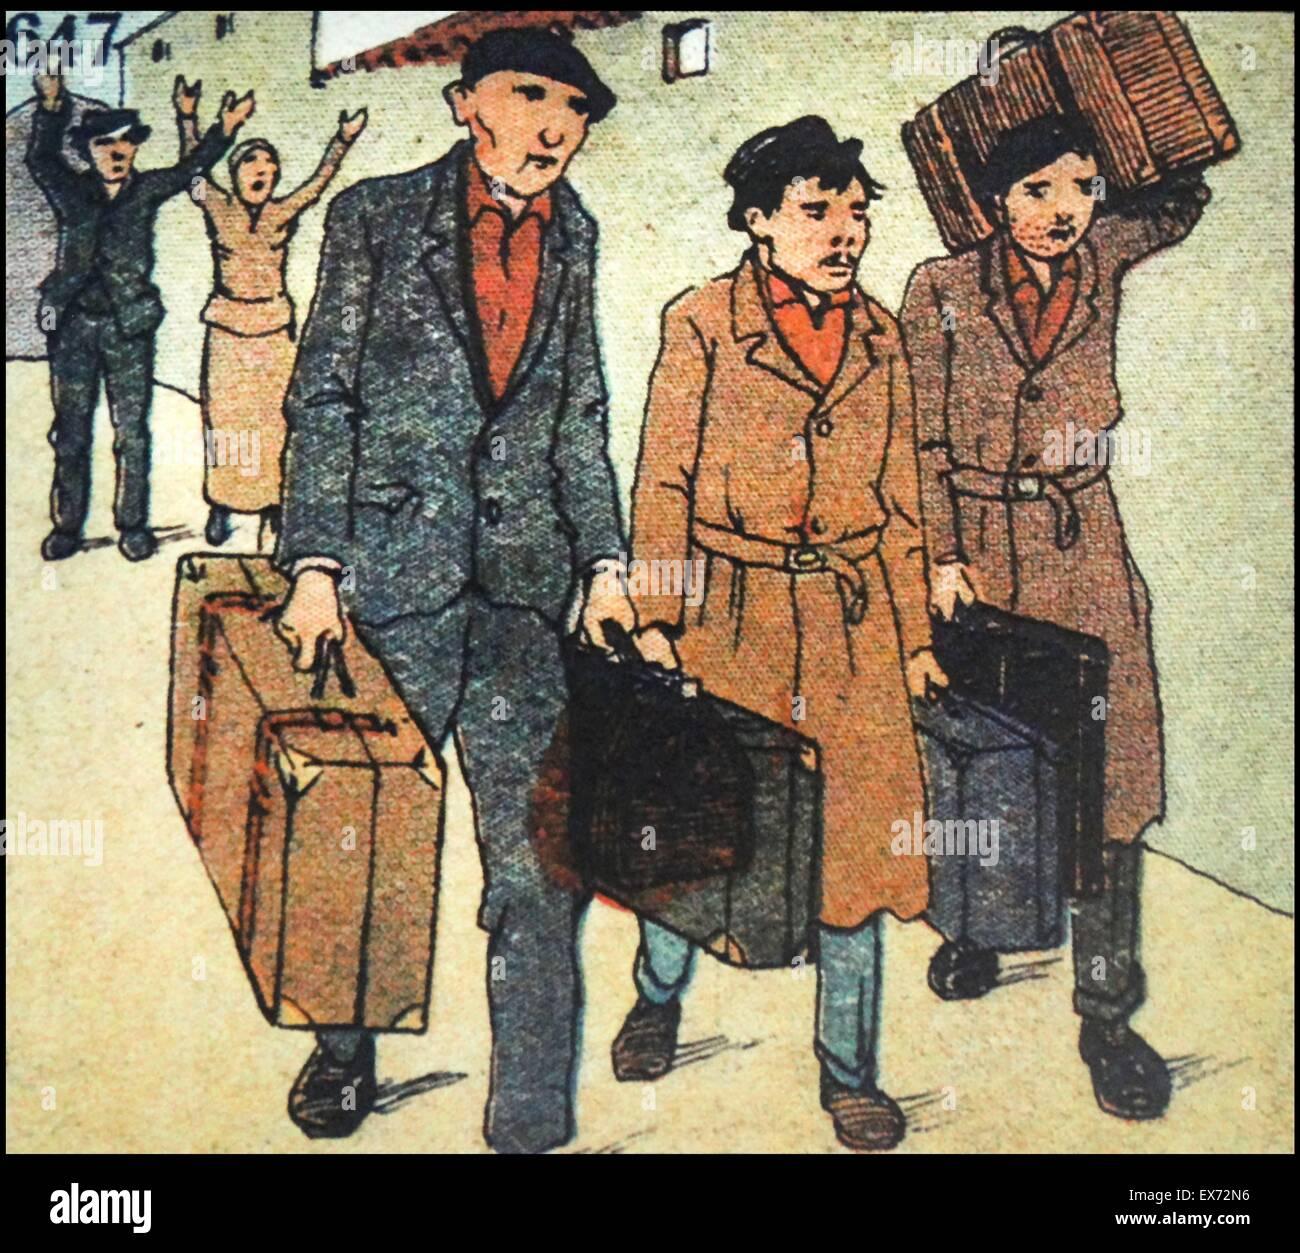 Satirical Nationalist cartoon of fleeing communists leaving Spain at the end of the Spanish Civil War - Stock Image